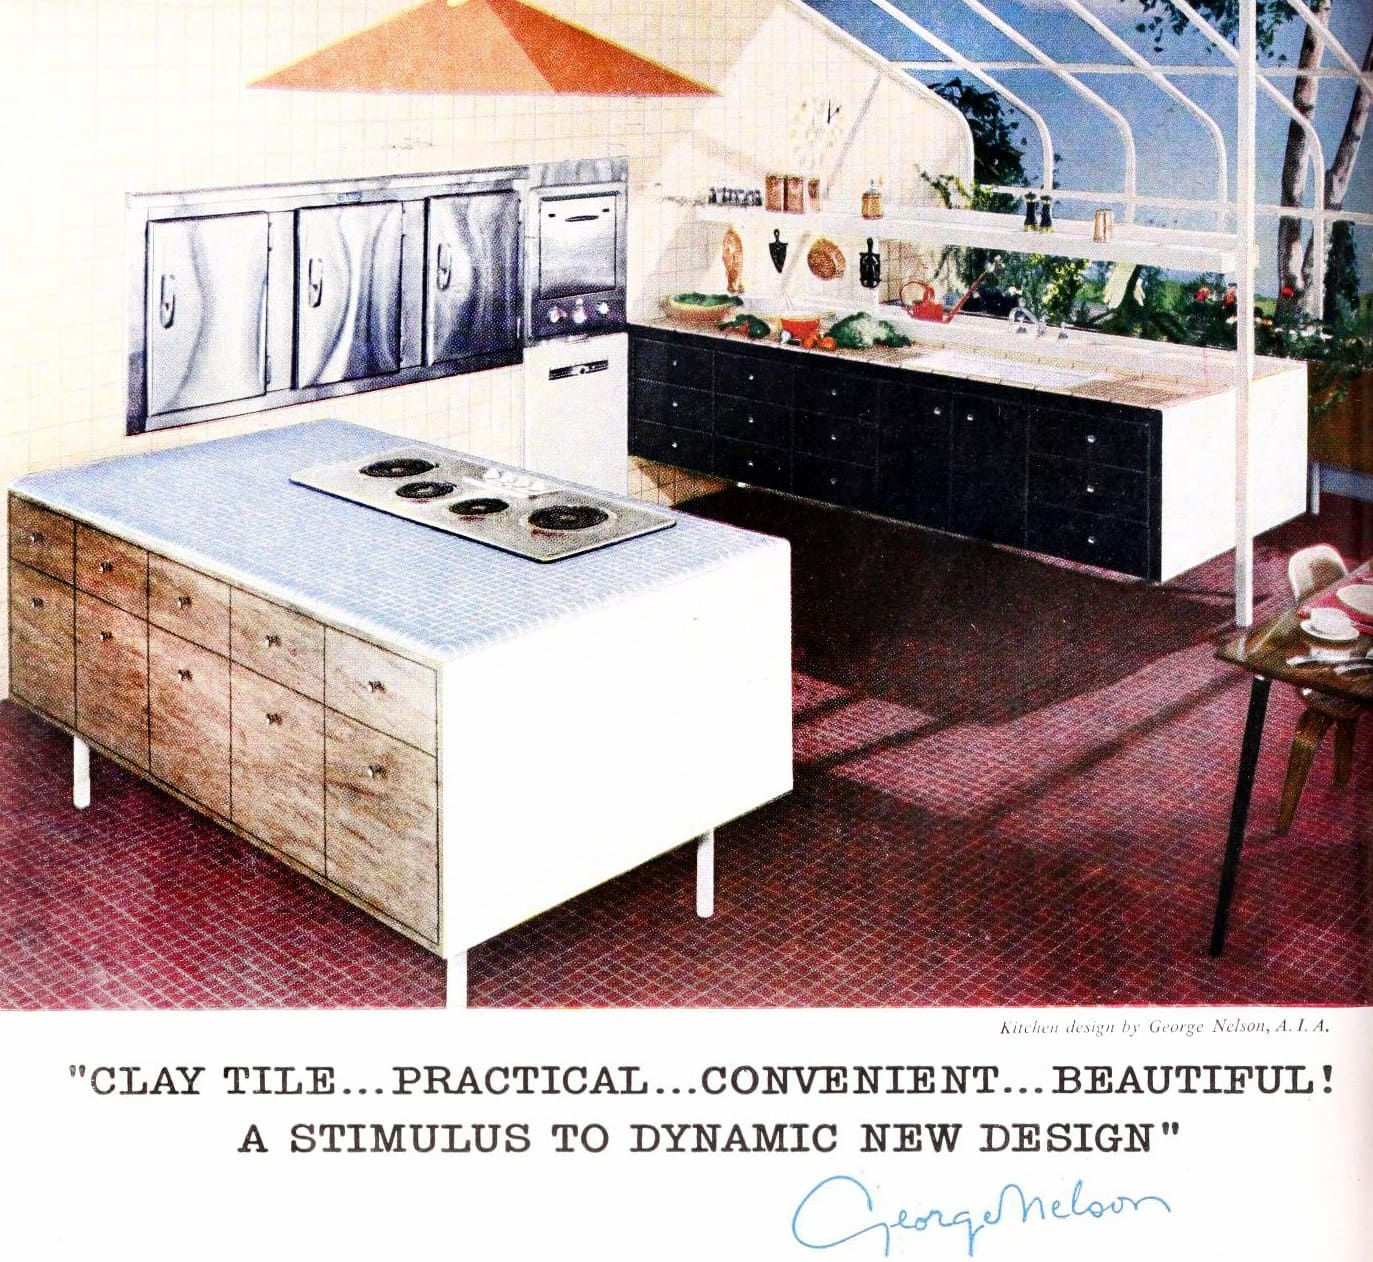 Unique architect-designed kitchen from the 1950s